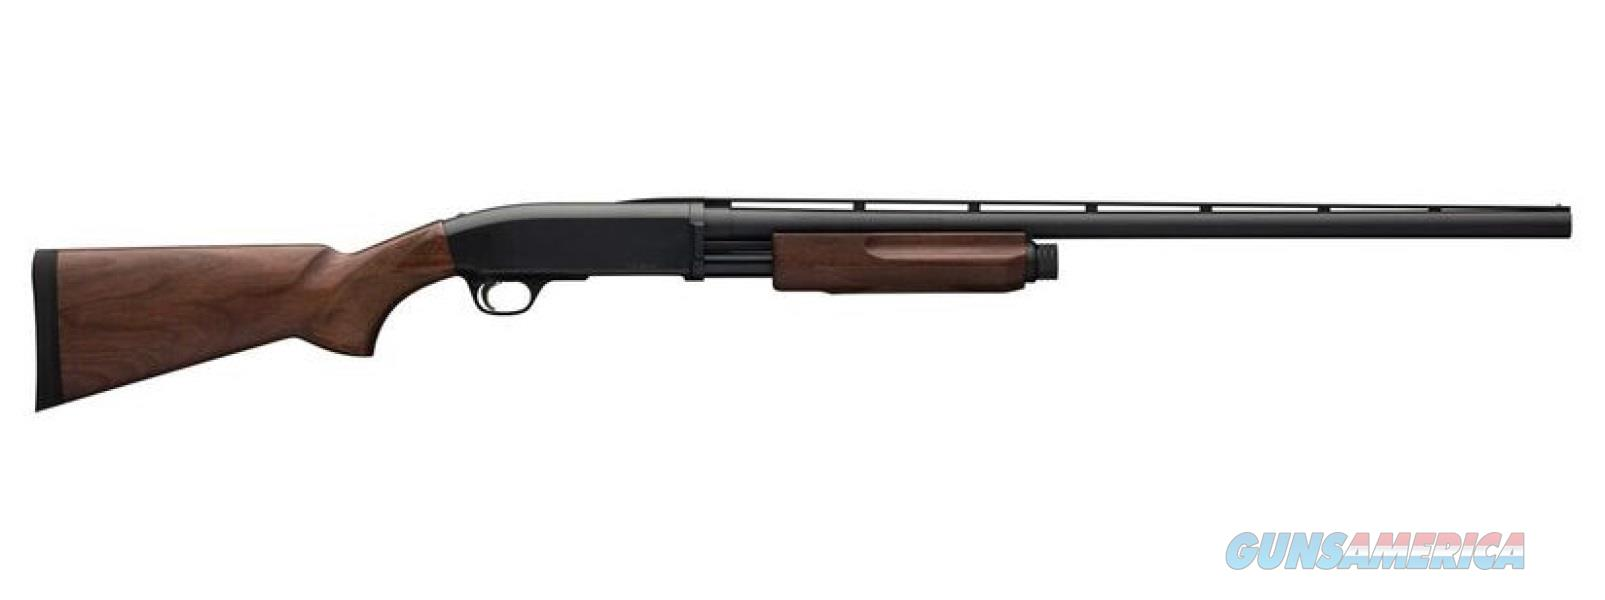 "Browning 012284604 BPS Field Pump 20 Gauge 28"" 3"" Black Walnut Stk Satin Blued Steel  Guns > Shotguns > B Misc Shotguns"